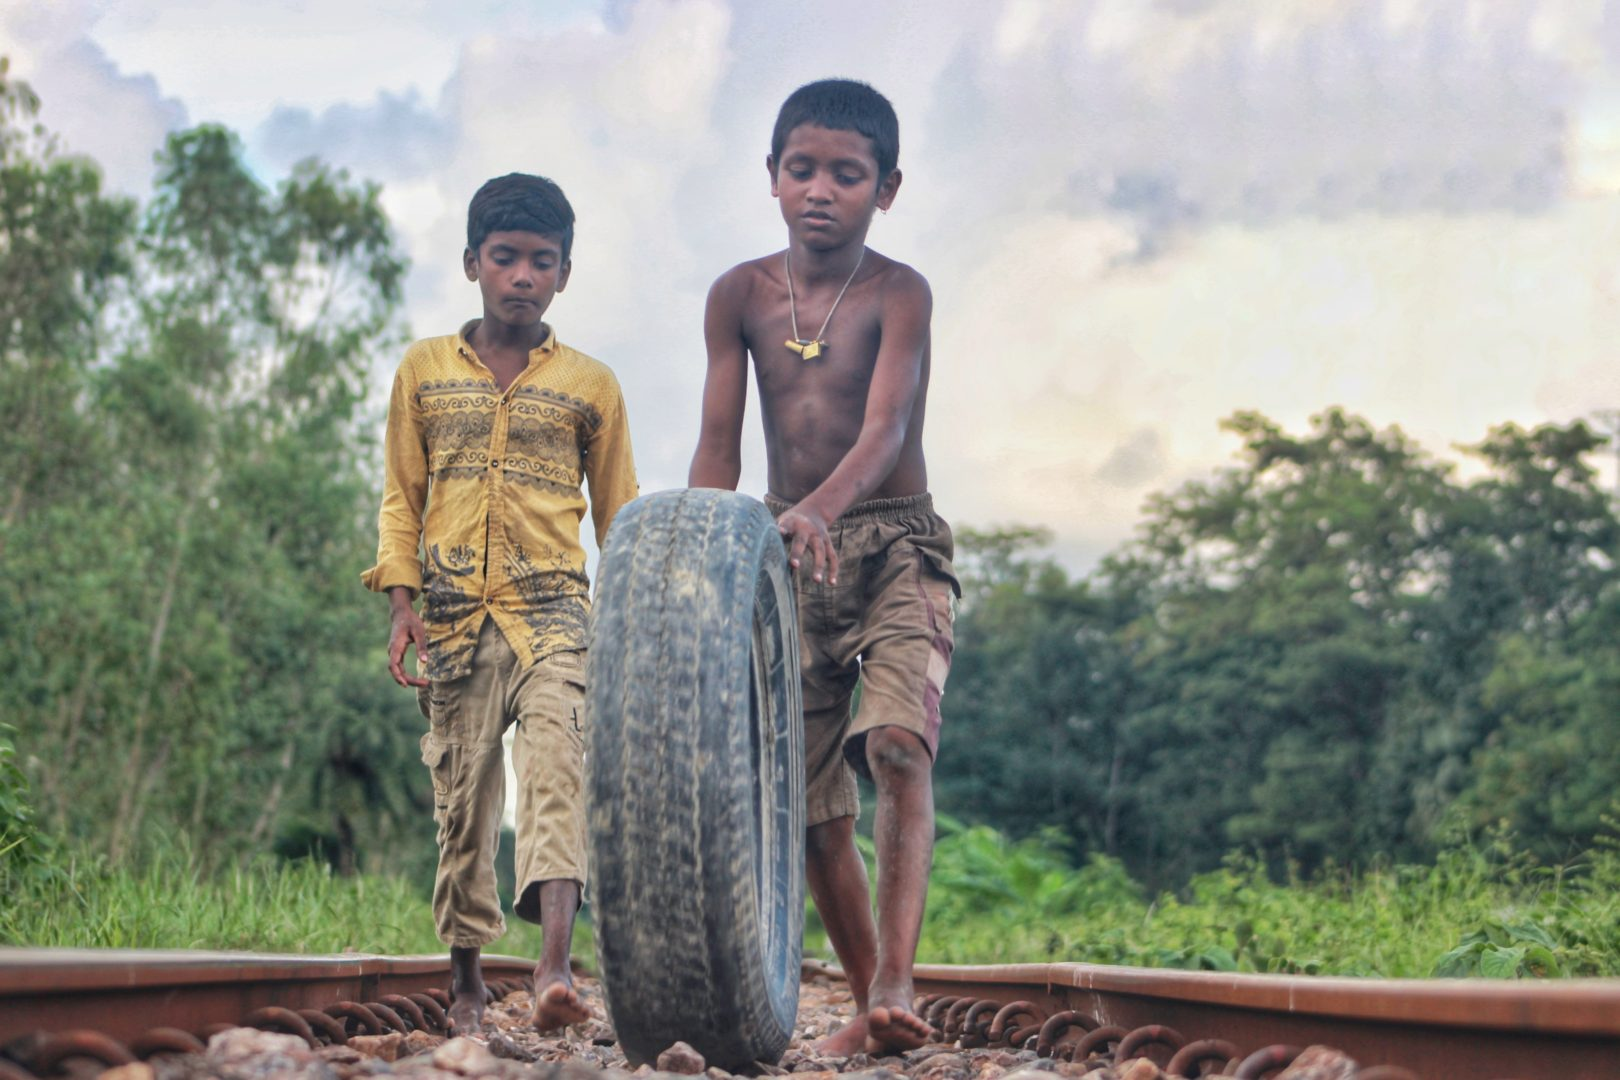 Photographer:   Amdad Hossain   Country:    Bangladesh  Title:    Childhood in Railway Road